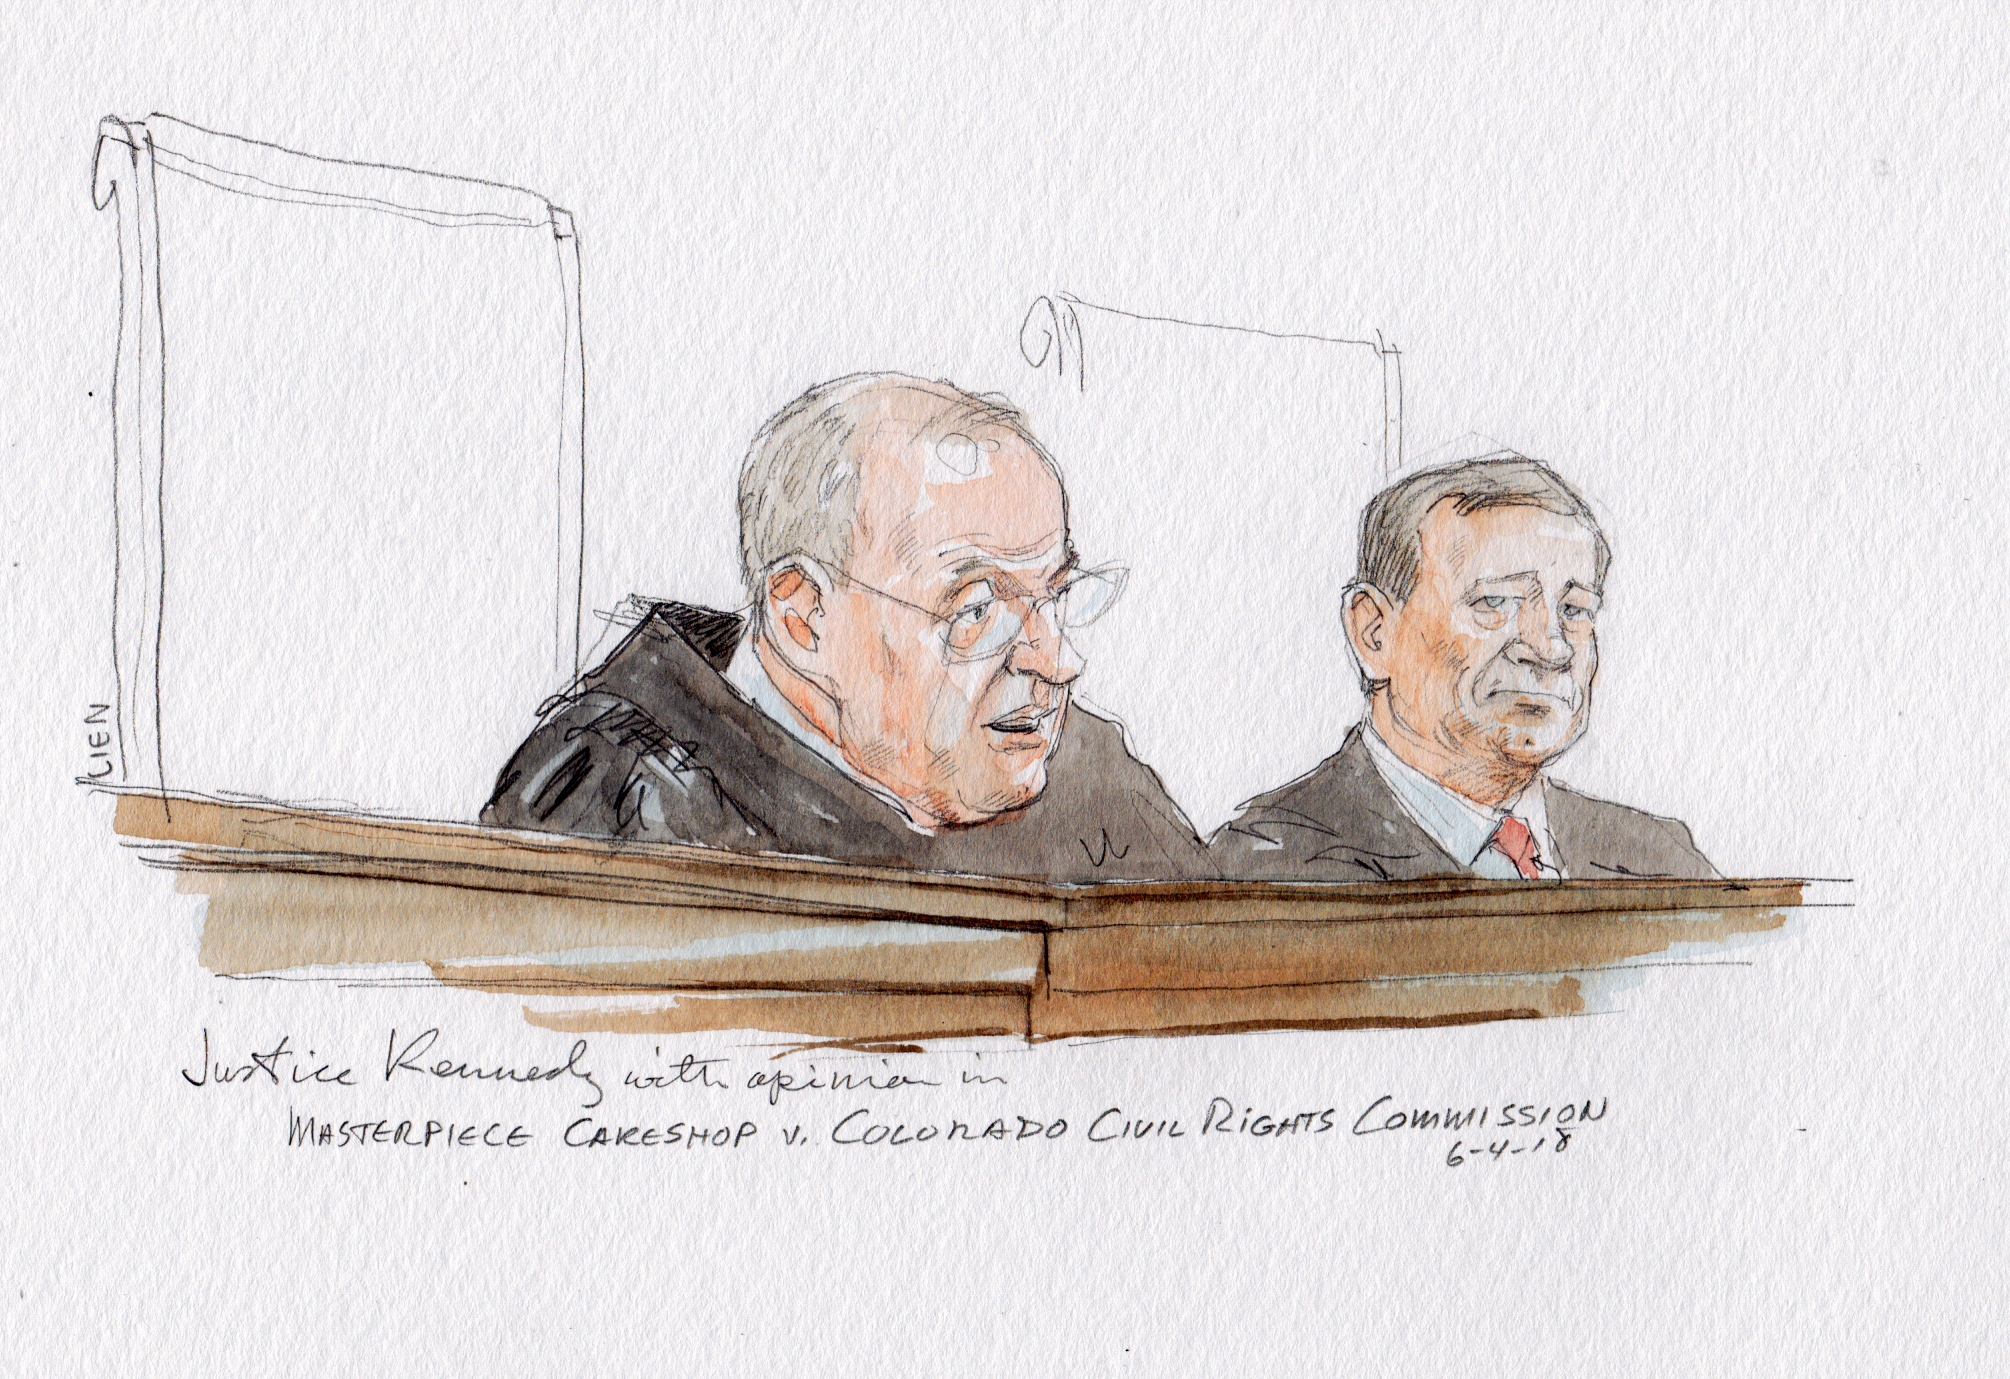 Arthur Lien's sketch of Justice Anthony Kennedy delivering the U.S. Supreme Court opinion in the Masterpiece Cakeshop case on Monday, June 4.